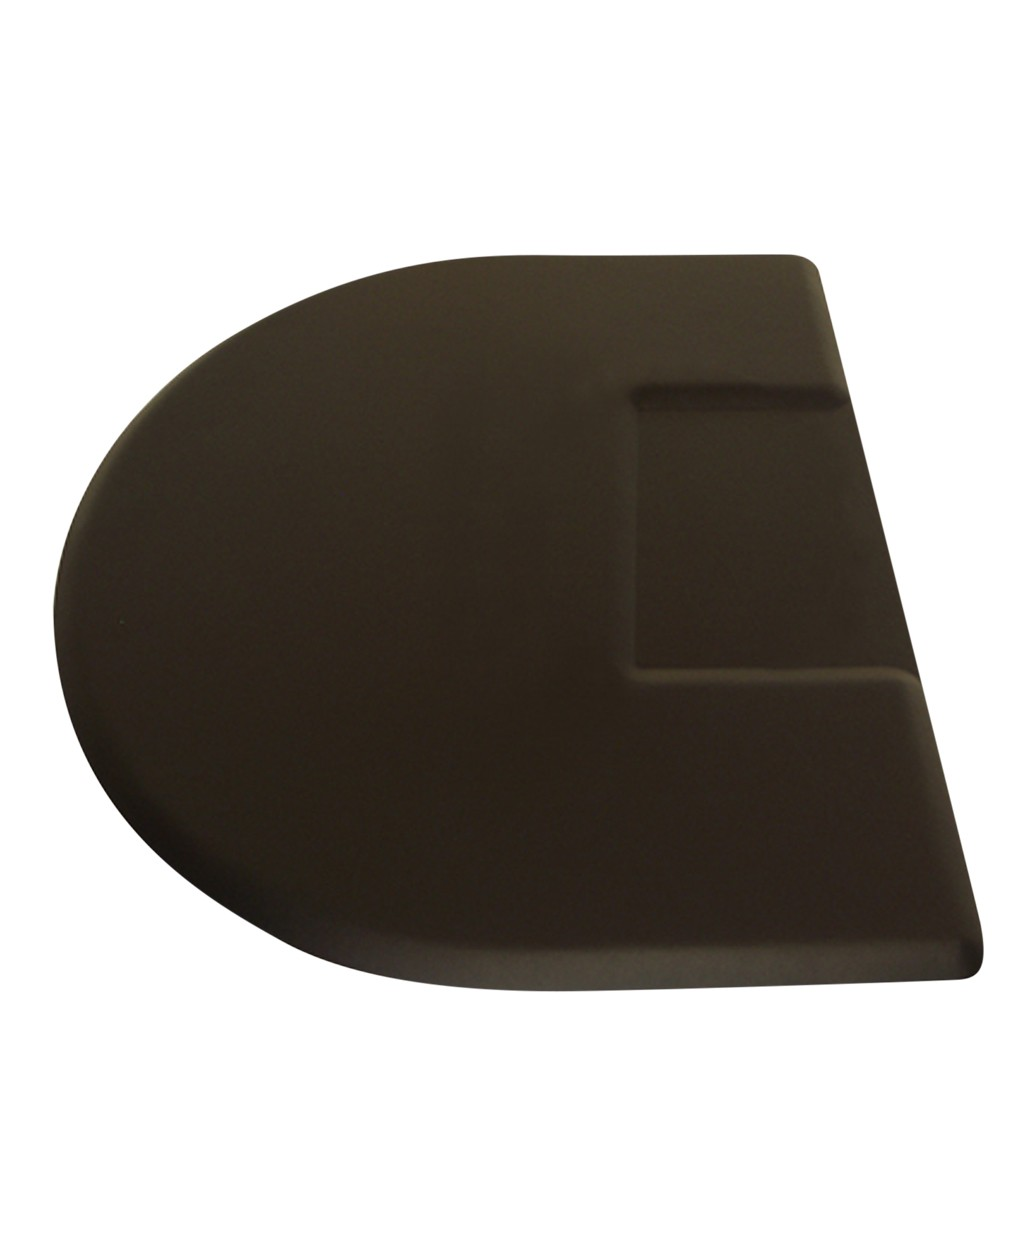 3' X 4.5' IC Urethane Extra Soft Circular Mat w/ Square Cut-Out 3/4""